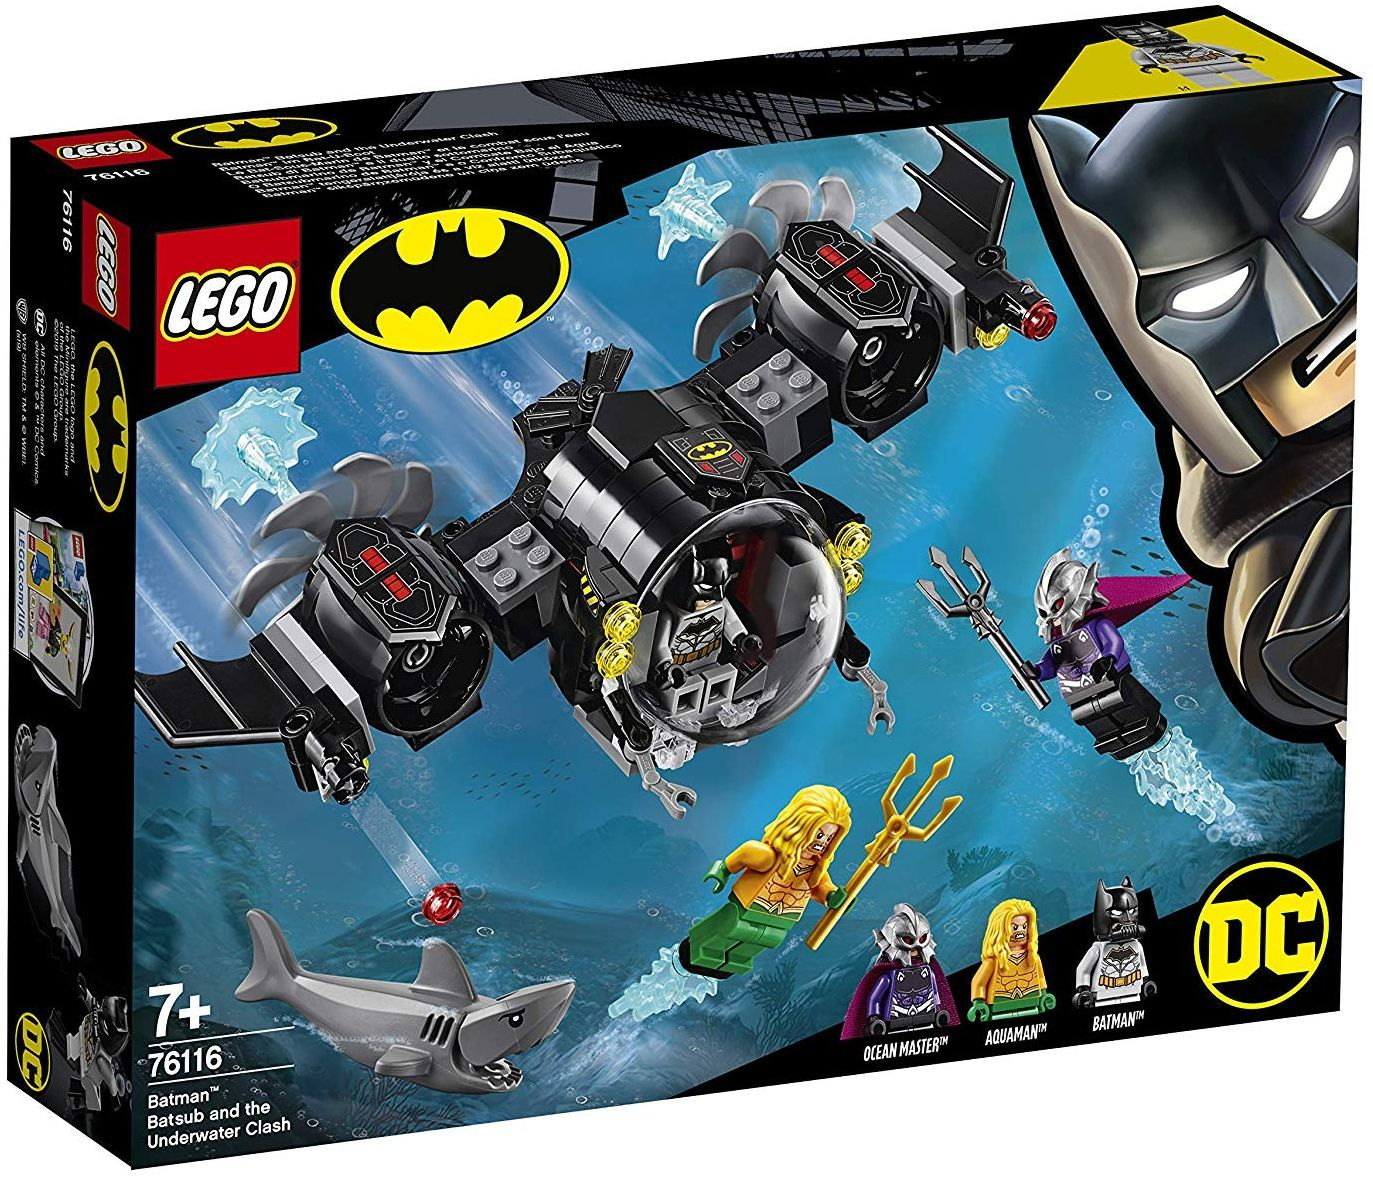 Конструктор Lego DC Super Heroes - Batman Batsub and the Underwater Clash (76116) - 7